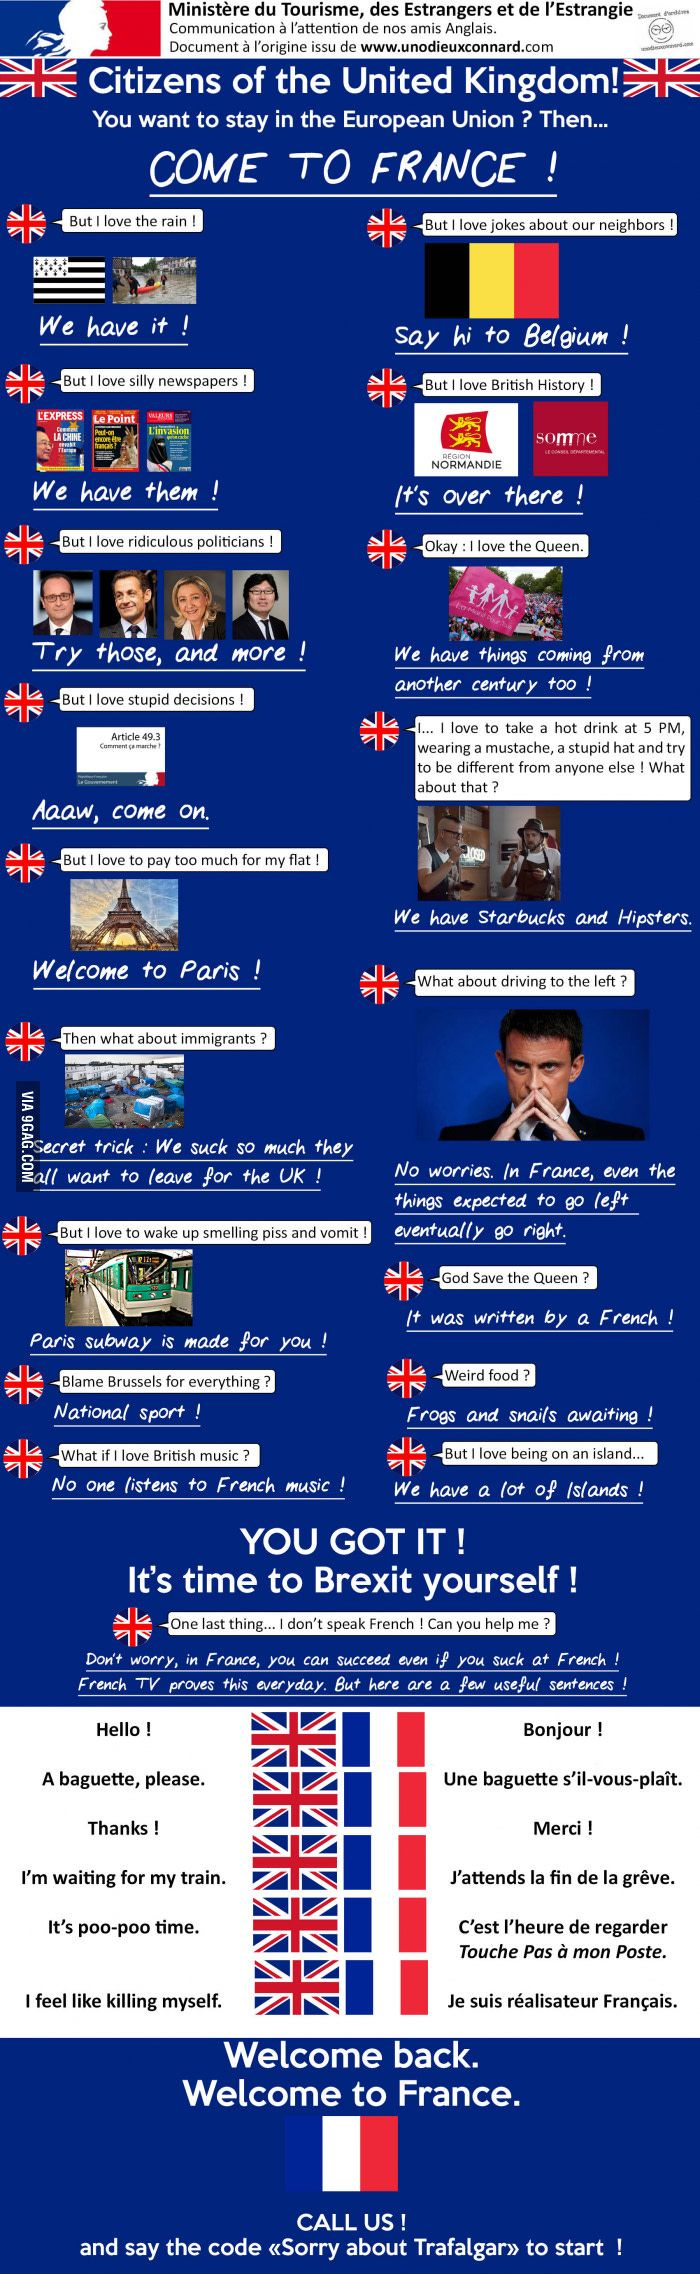 For those who want to stay in Europe but who love britishing... Brexit yourself !(By Un odieux Connard) - 9GAG